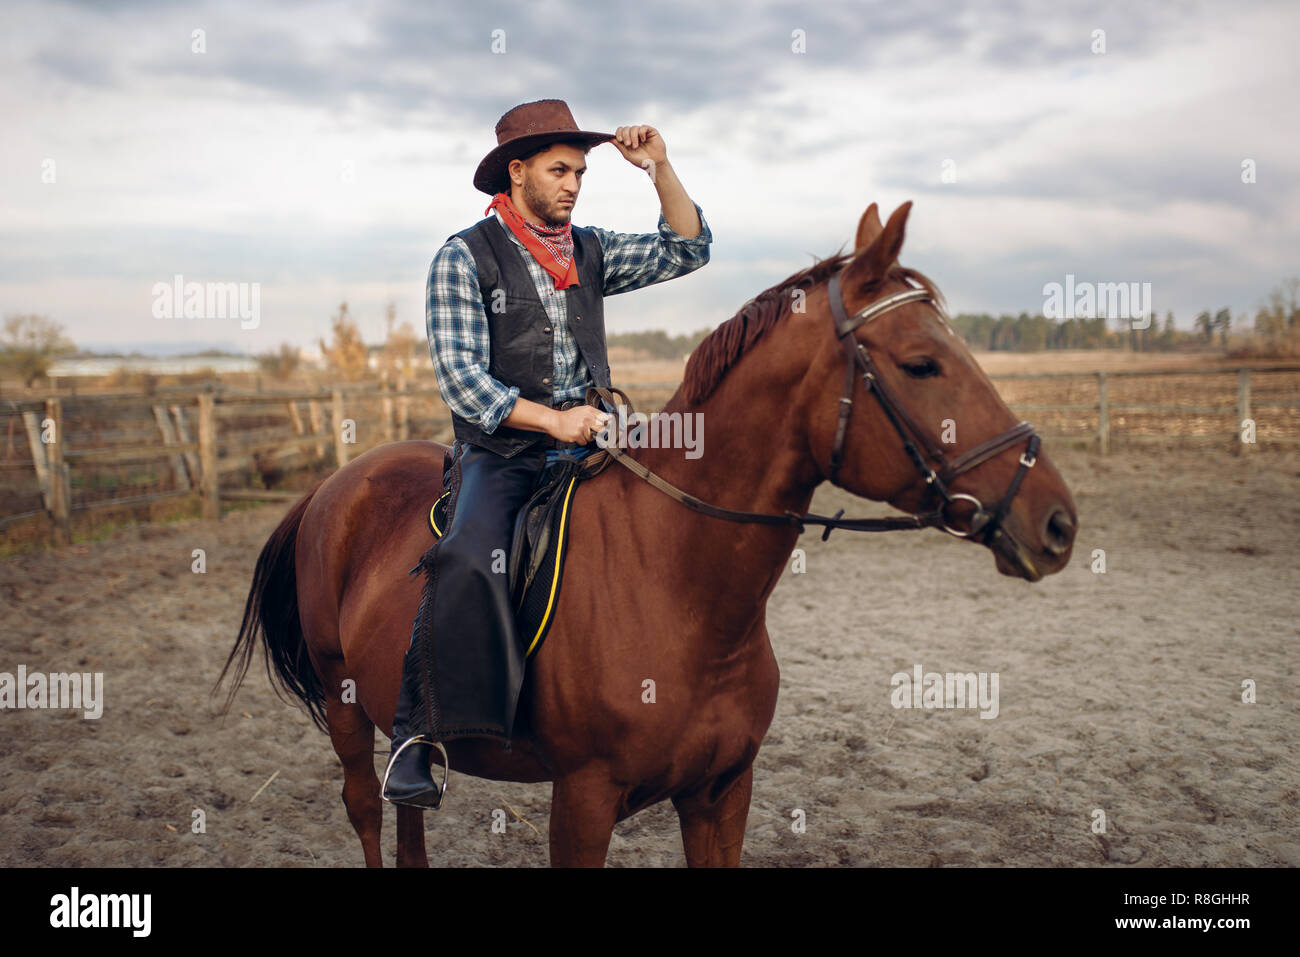 Cowboy Riding A Horse In Texas Country Saloon On Background Western Vintage Male Person On Horseback Wild West Adventure Stock Photo Alamy